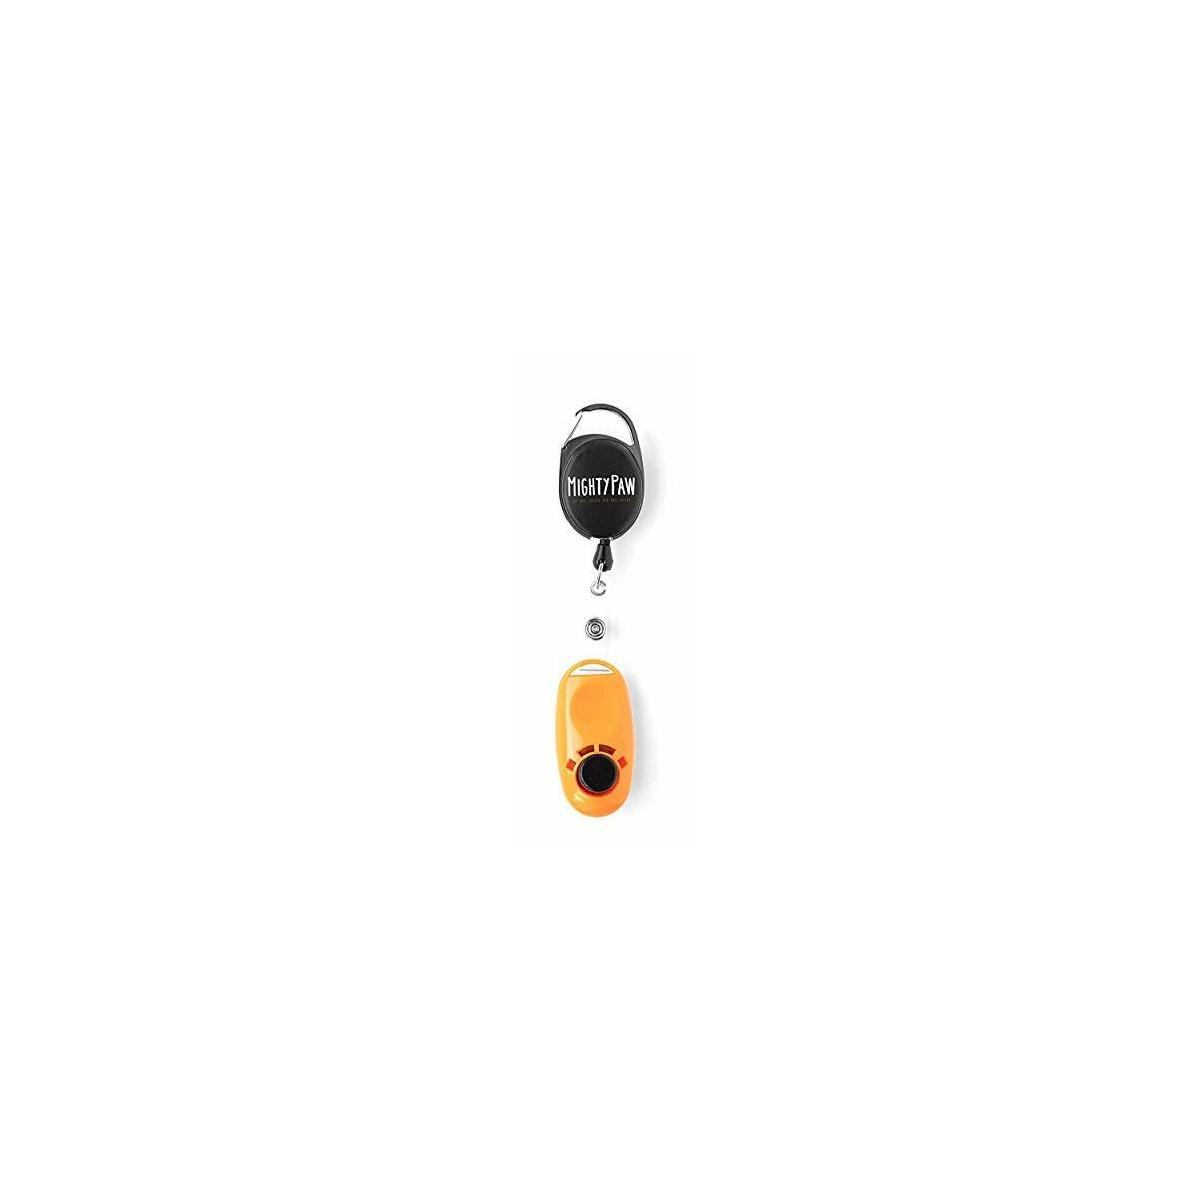 Mighty Paw Dog Training Clicker, 2 Attachment Options, Retractable Belt Clip + Wrist Lanyard (Orange)